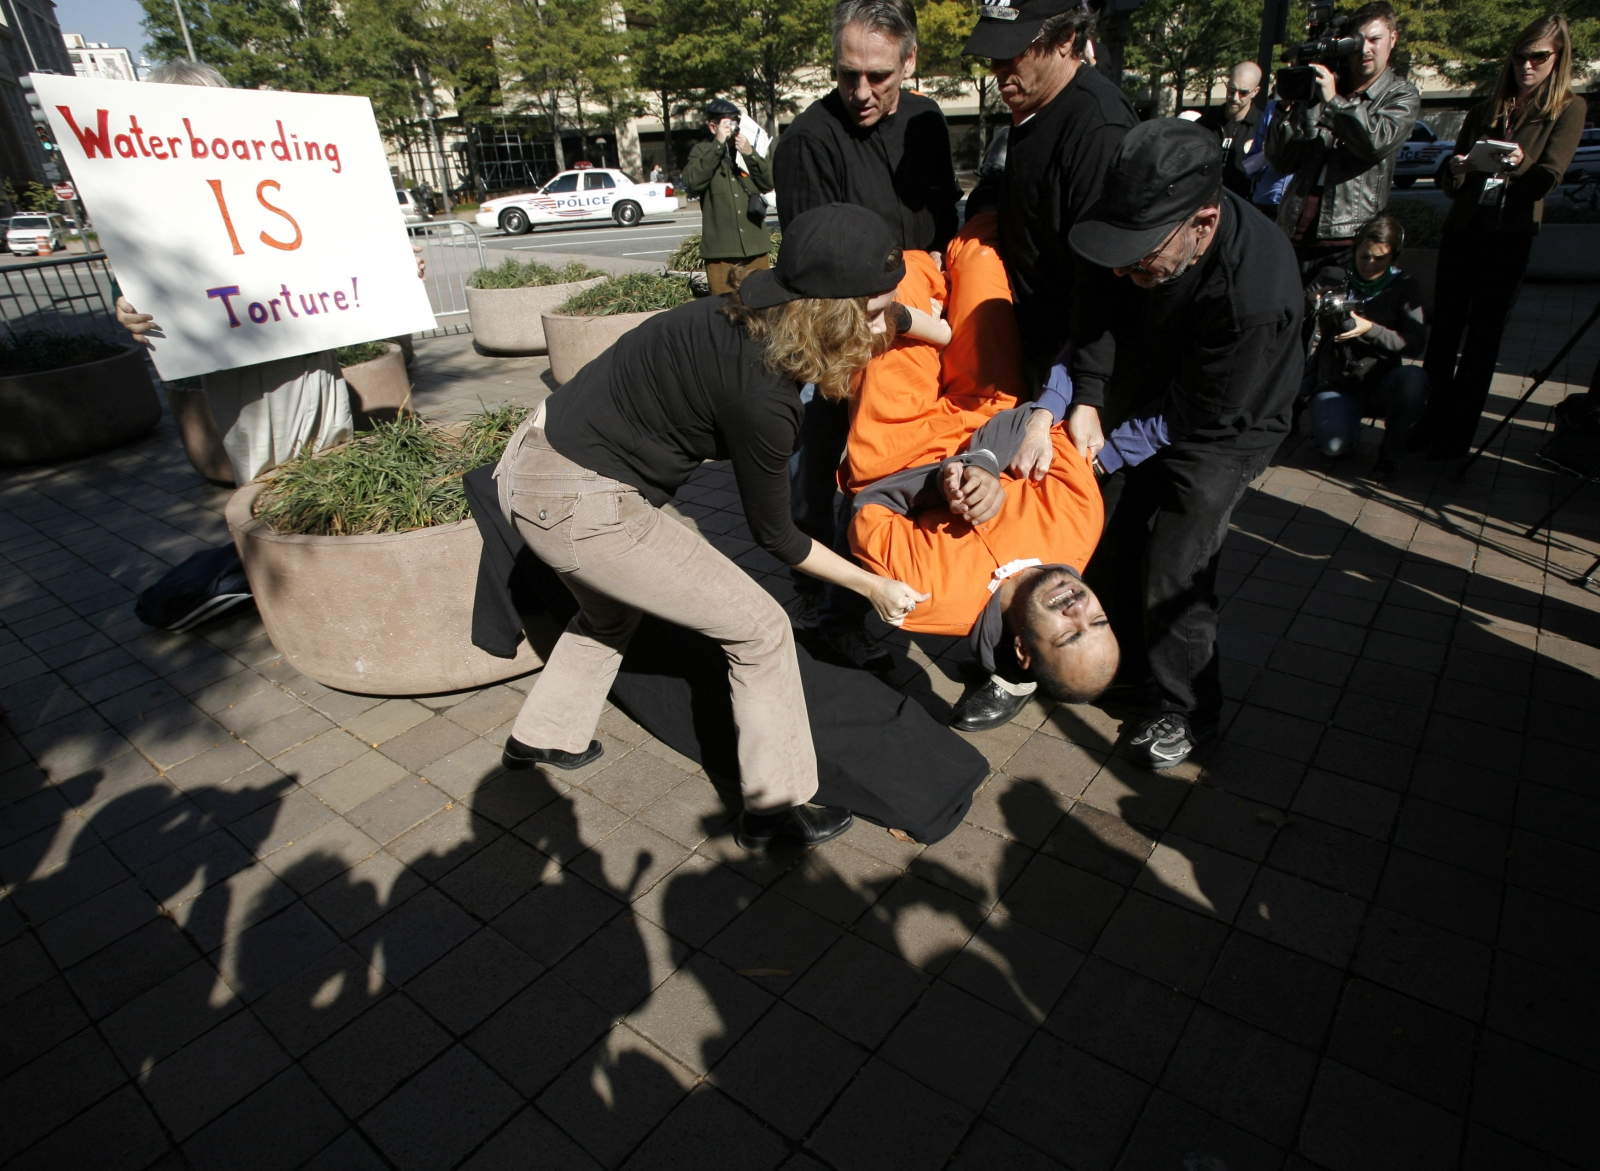 Demonstrator Maboud Ebrahimzadeh is lowered onto the board during a simulation of waterboarding outside the Justice Departement in Washington